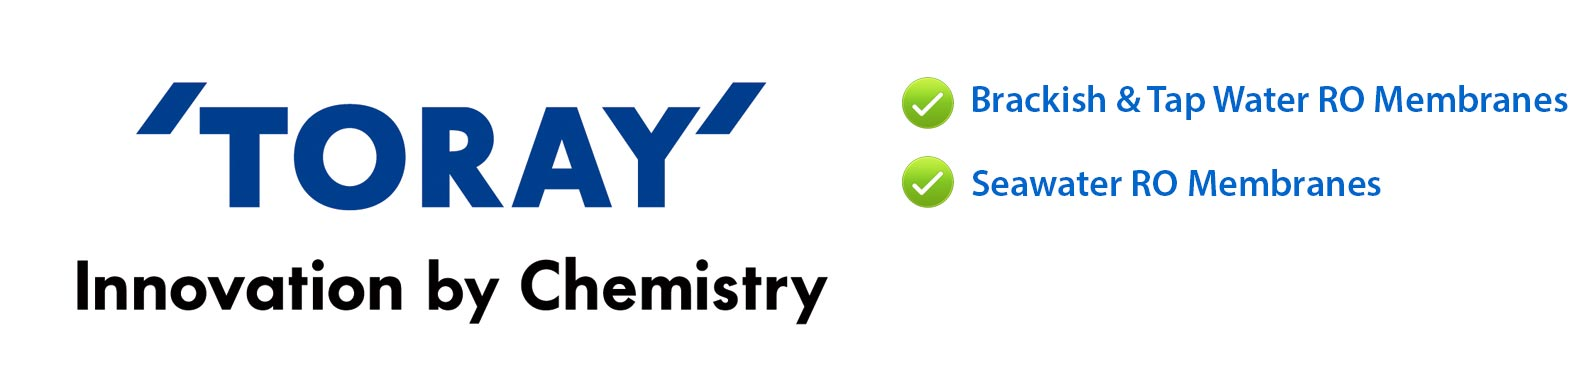 toray membranes elements parts and components